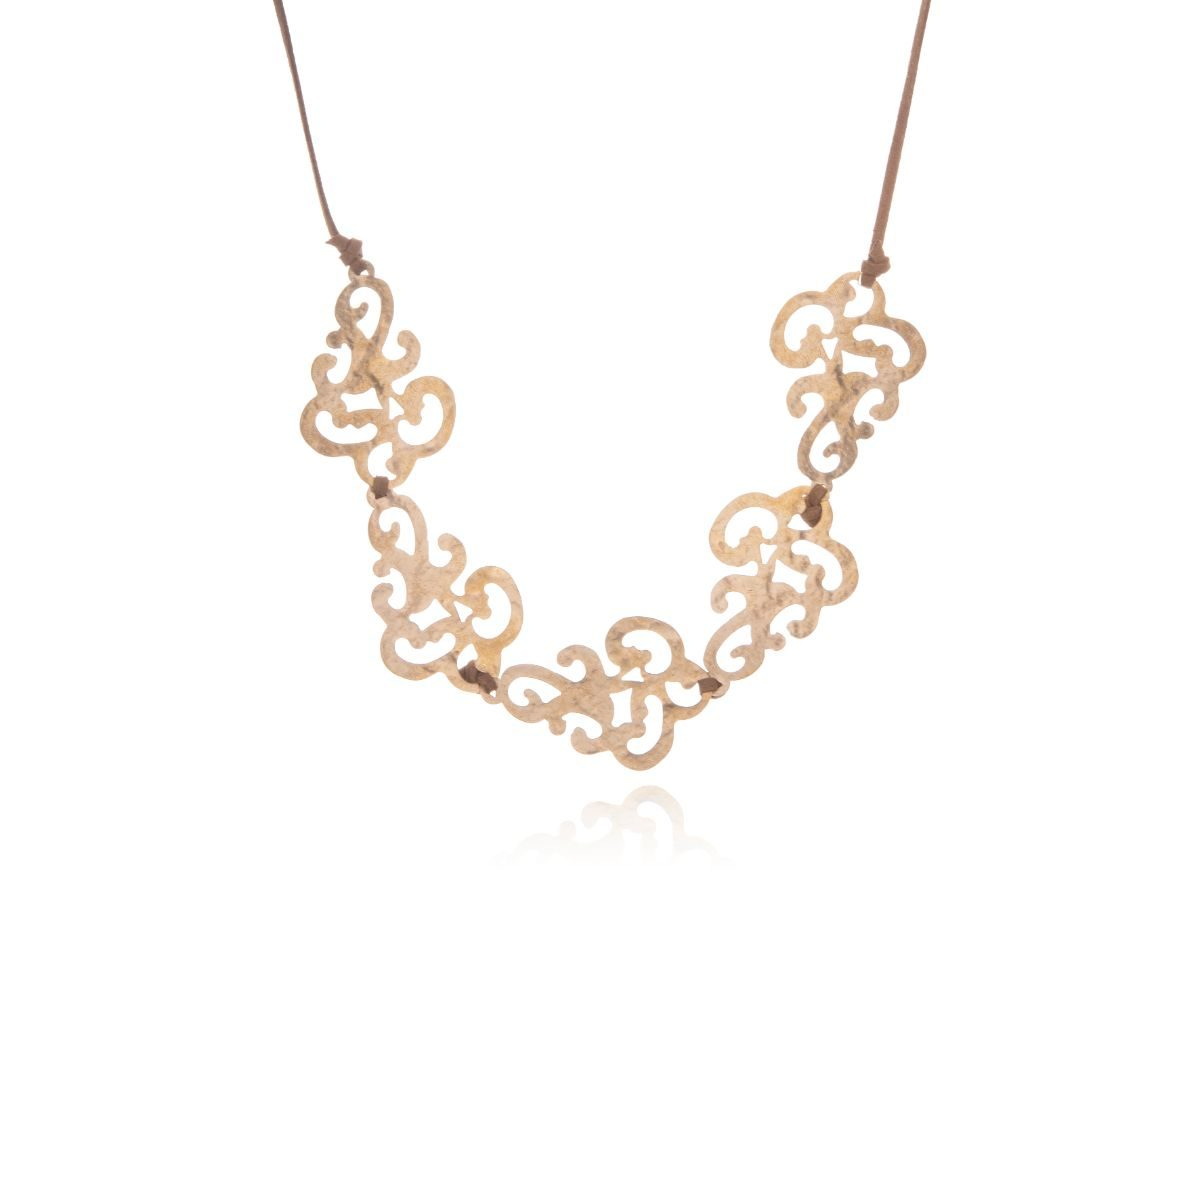 Barroc short necklace with five pieces of gold-plated brass in an original filigree shape and camel-colored suede